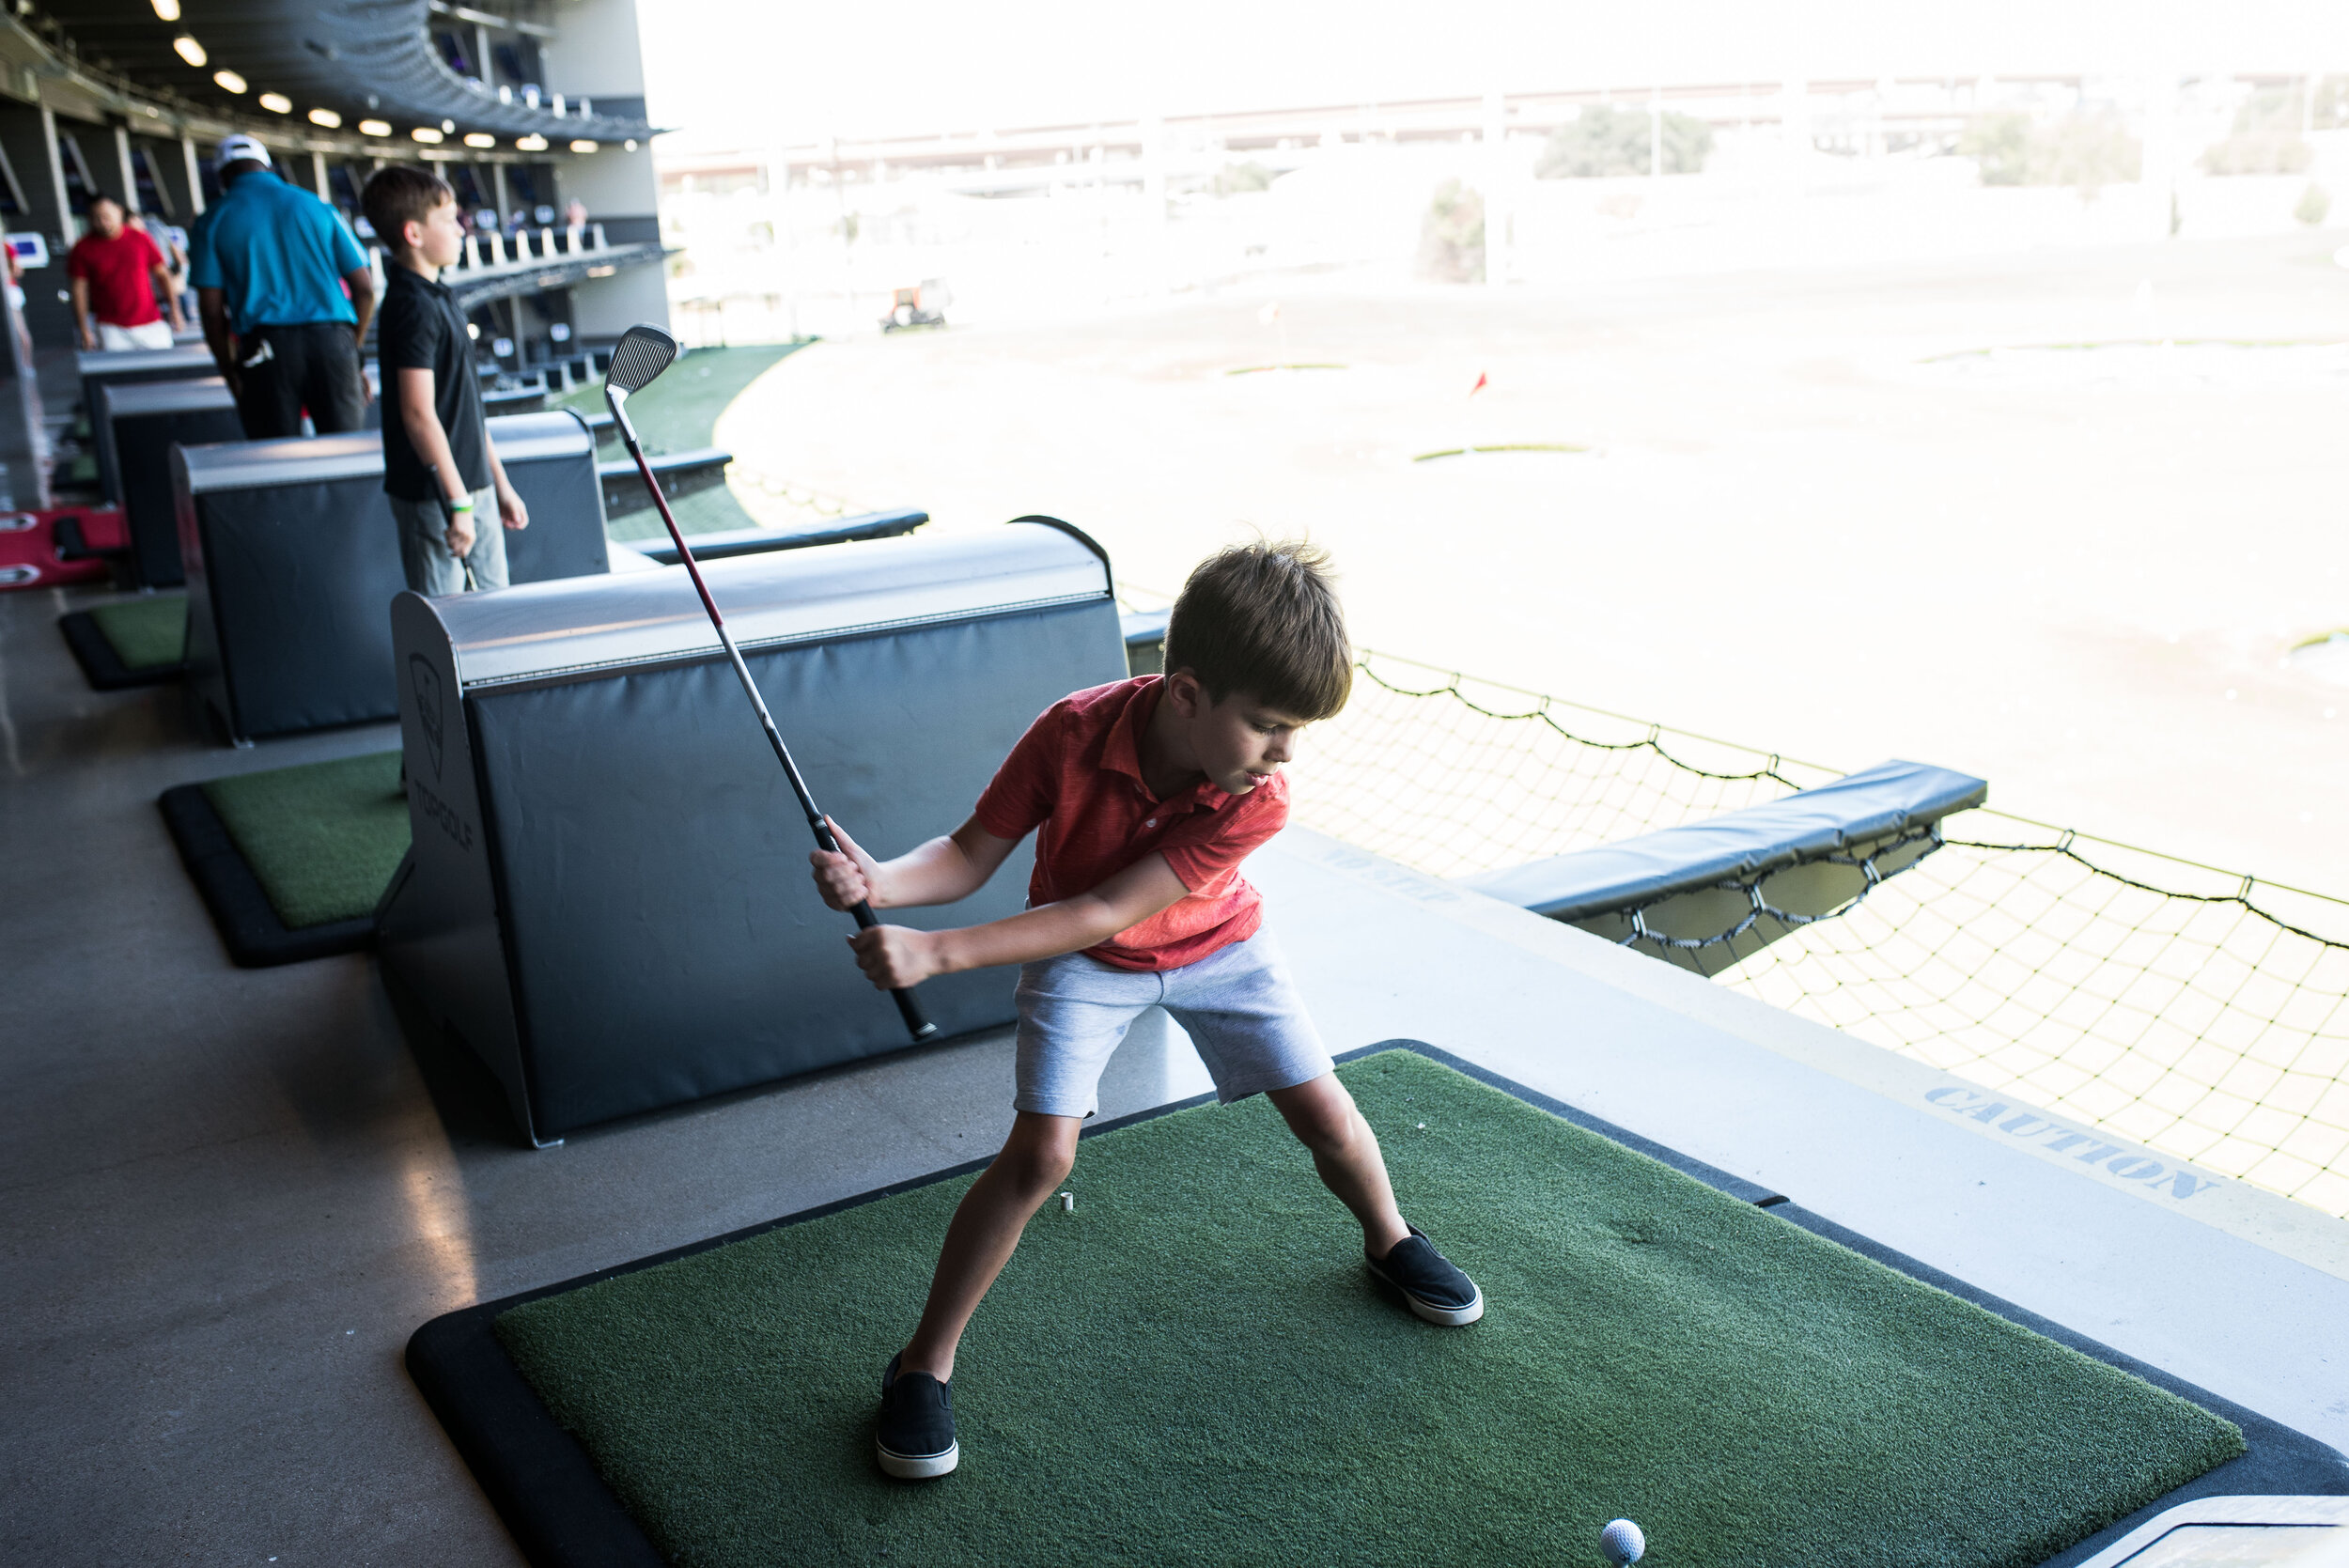 Aside from being a little embarrassed by how his little brother swings a club, Michael had a great time.